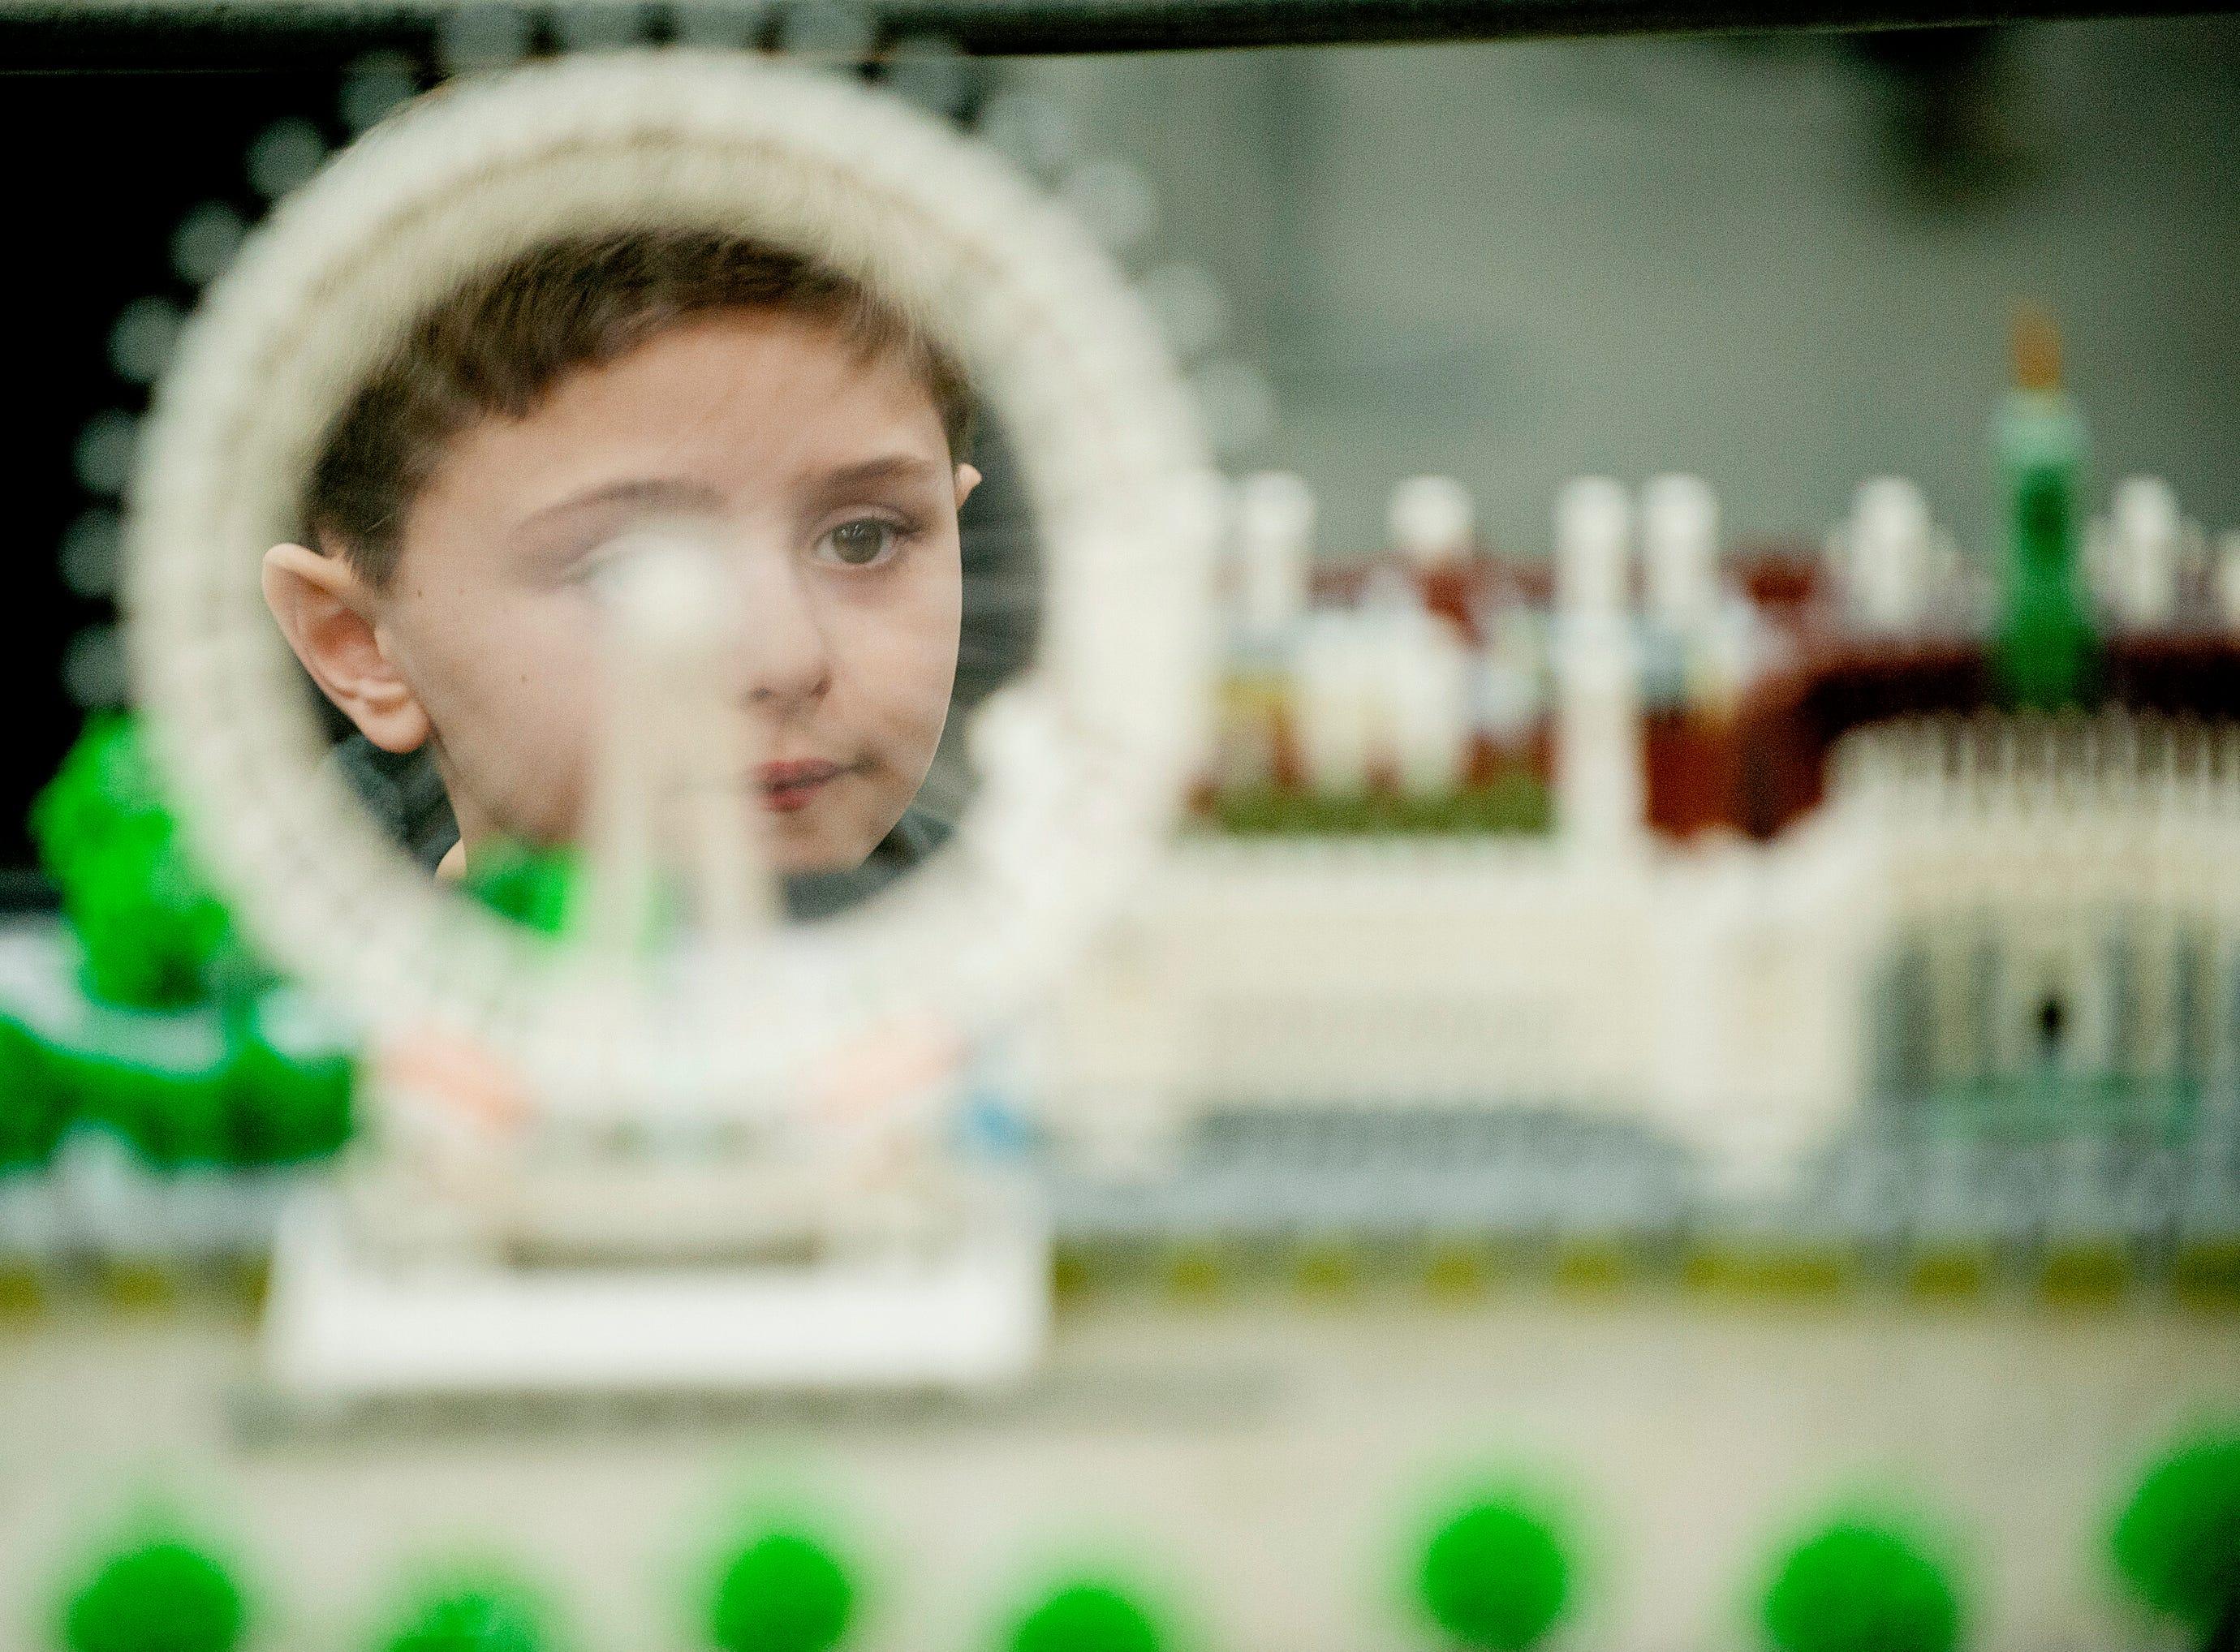 Corey Wwanson, age 8, of Jeffersontown, seen through a Lego representation of The London Eye, a cantilevered observation wheel on the South Bank of the River Thames in London. The exhibit was part of the BrickUniverse Lego Fan Convention at the Kentucky International Convention Center in downtown Louisville.19 January 2019